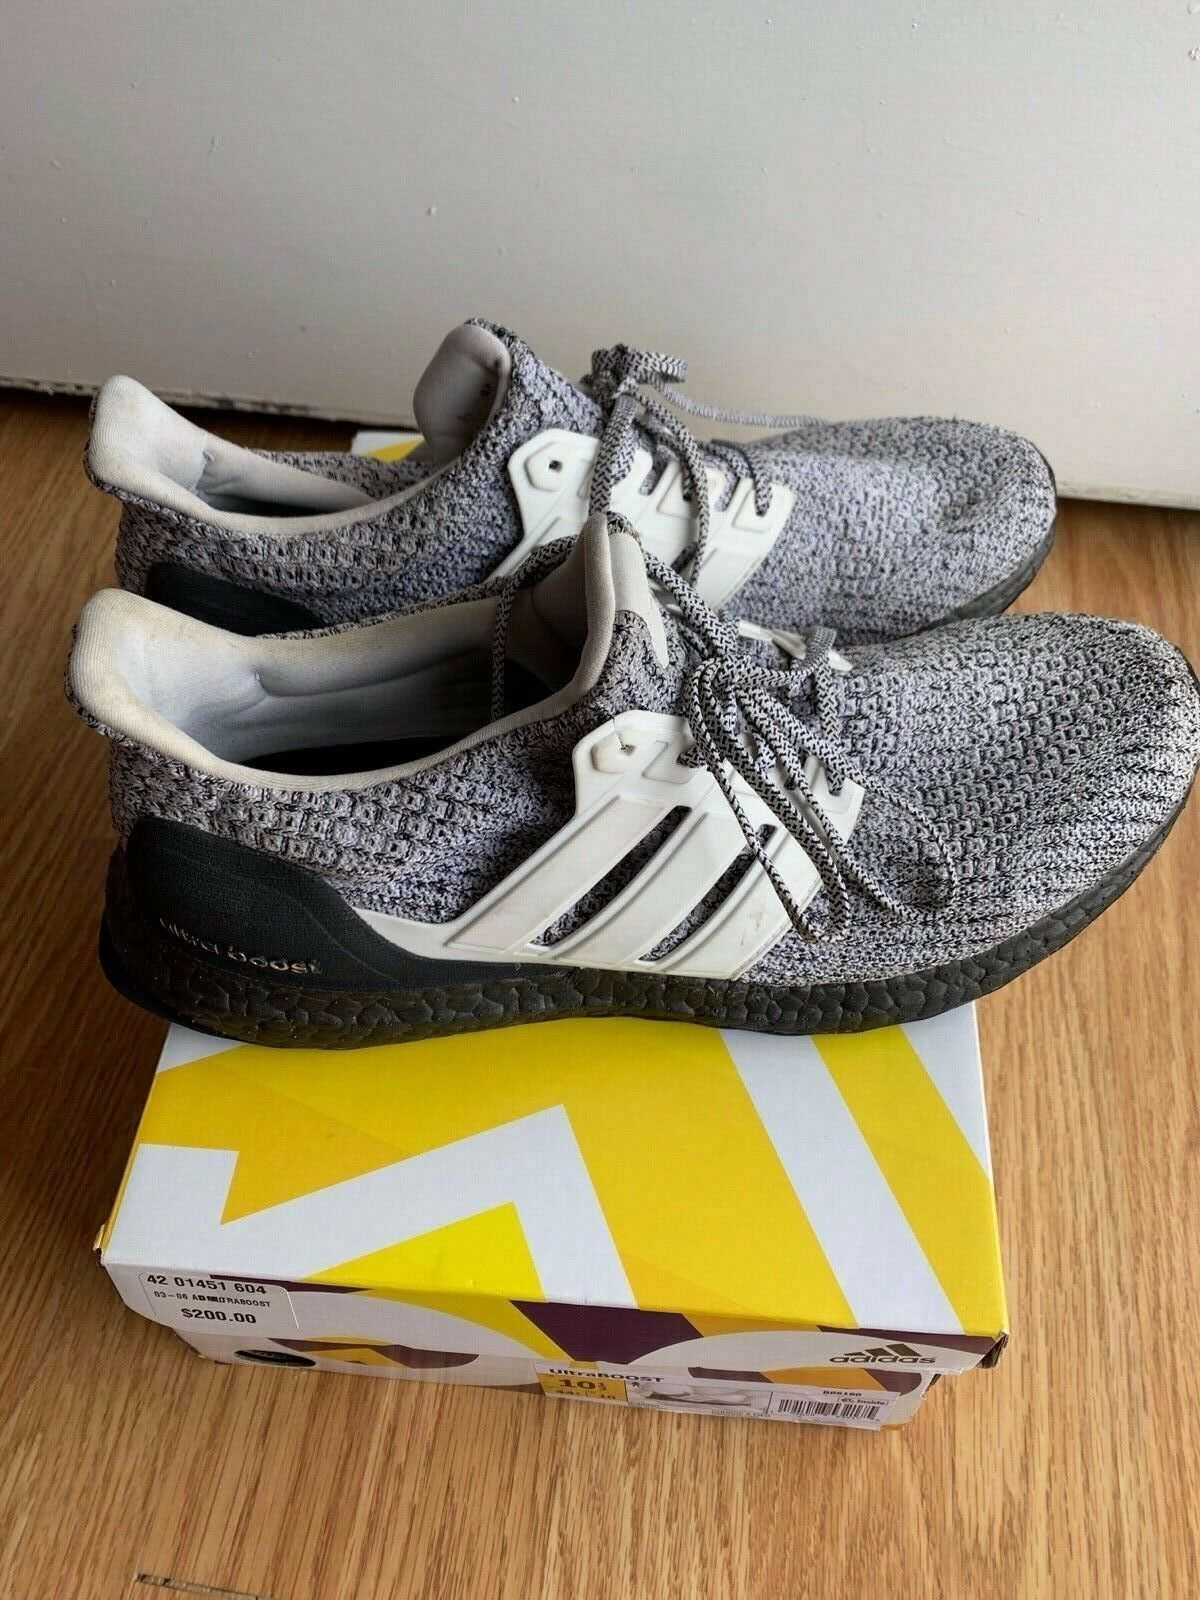 dec7836e730ae Adidas Ultra BOOST 4.0 Oreo BB6180 Cookies and Cream LTD Men s Size 10.5 US